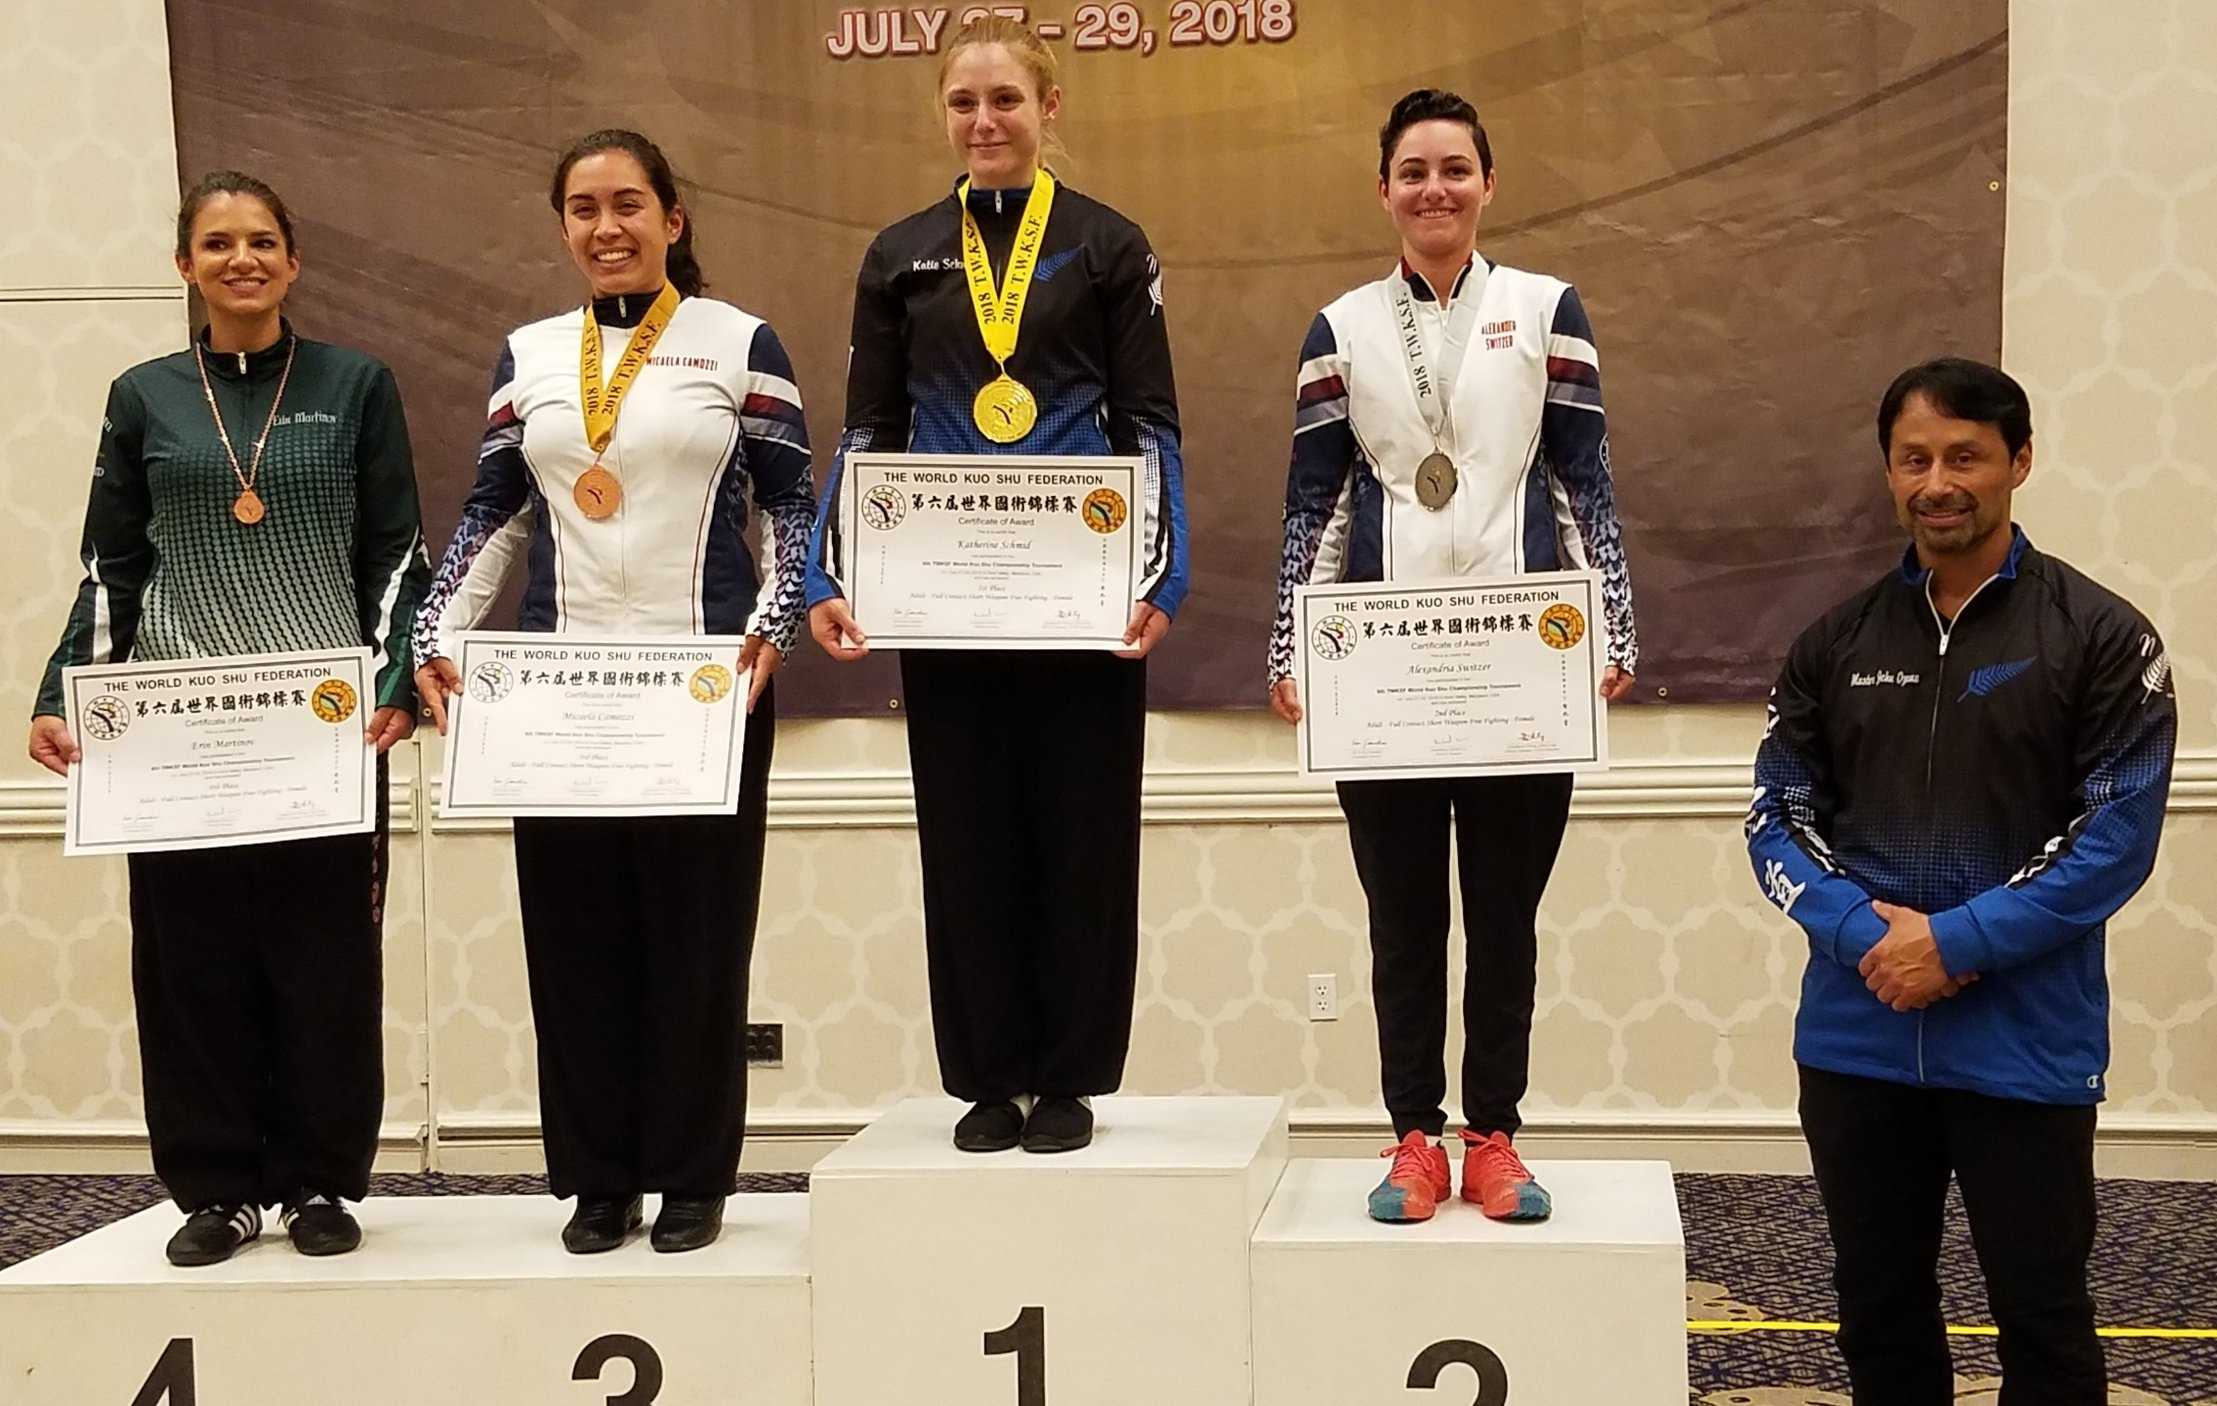 Katie Schmid receives her first place medal in Full Contact Short Weapons Fighting at the 6th TWKSF World Championships in the United States